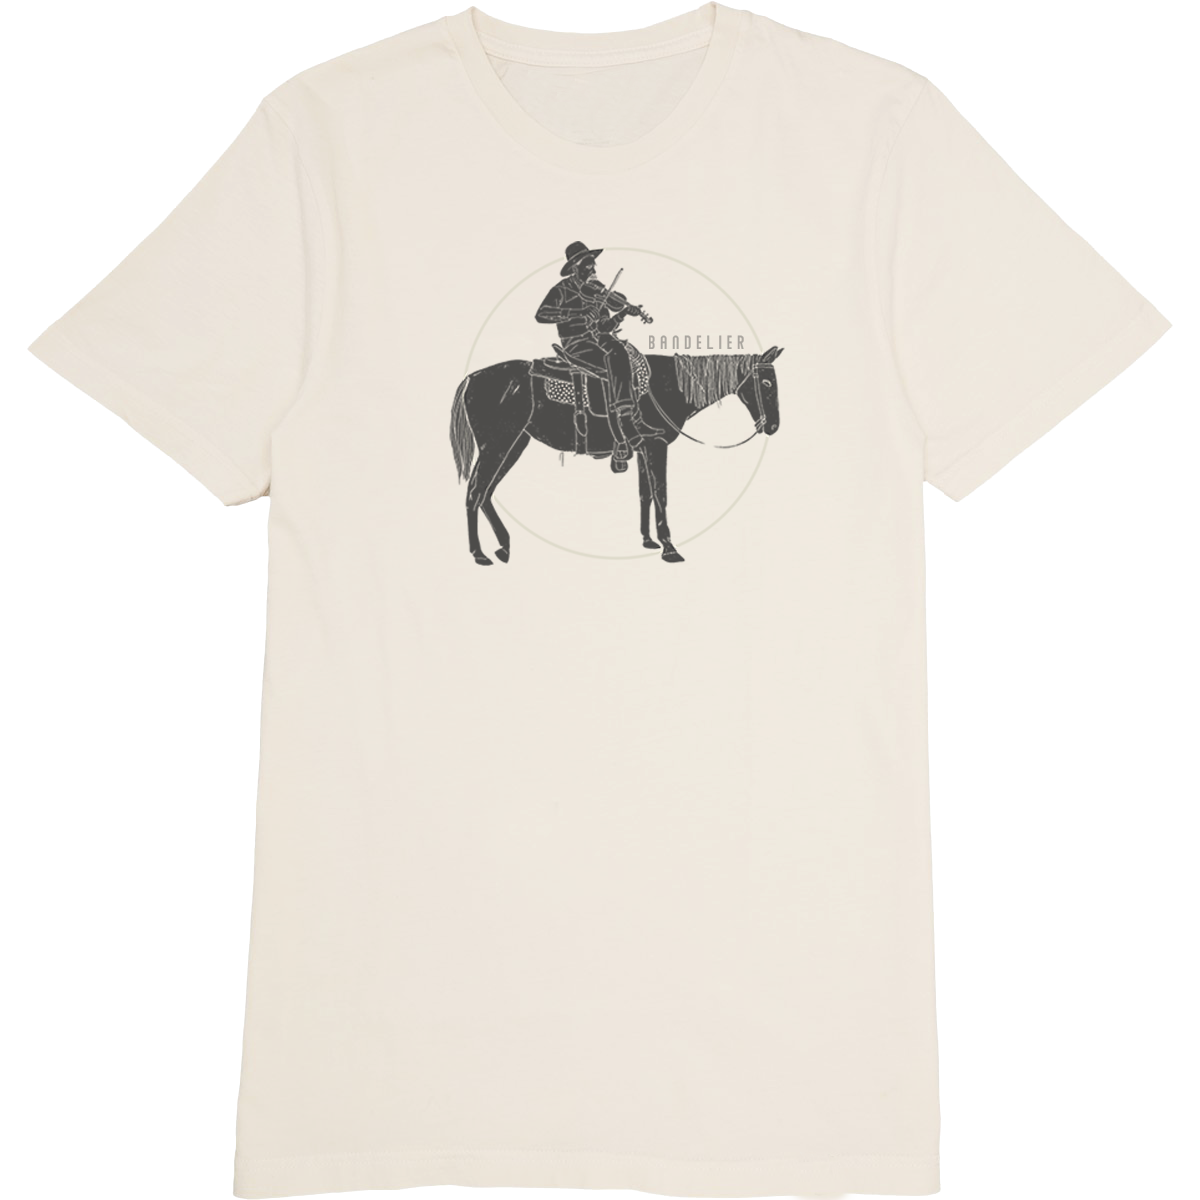 Bandelier T-Shirt (Coming Soon)